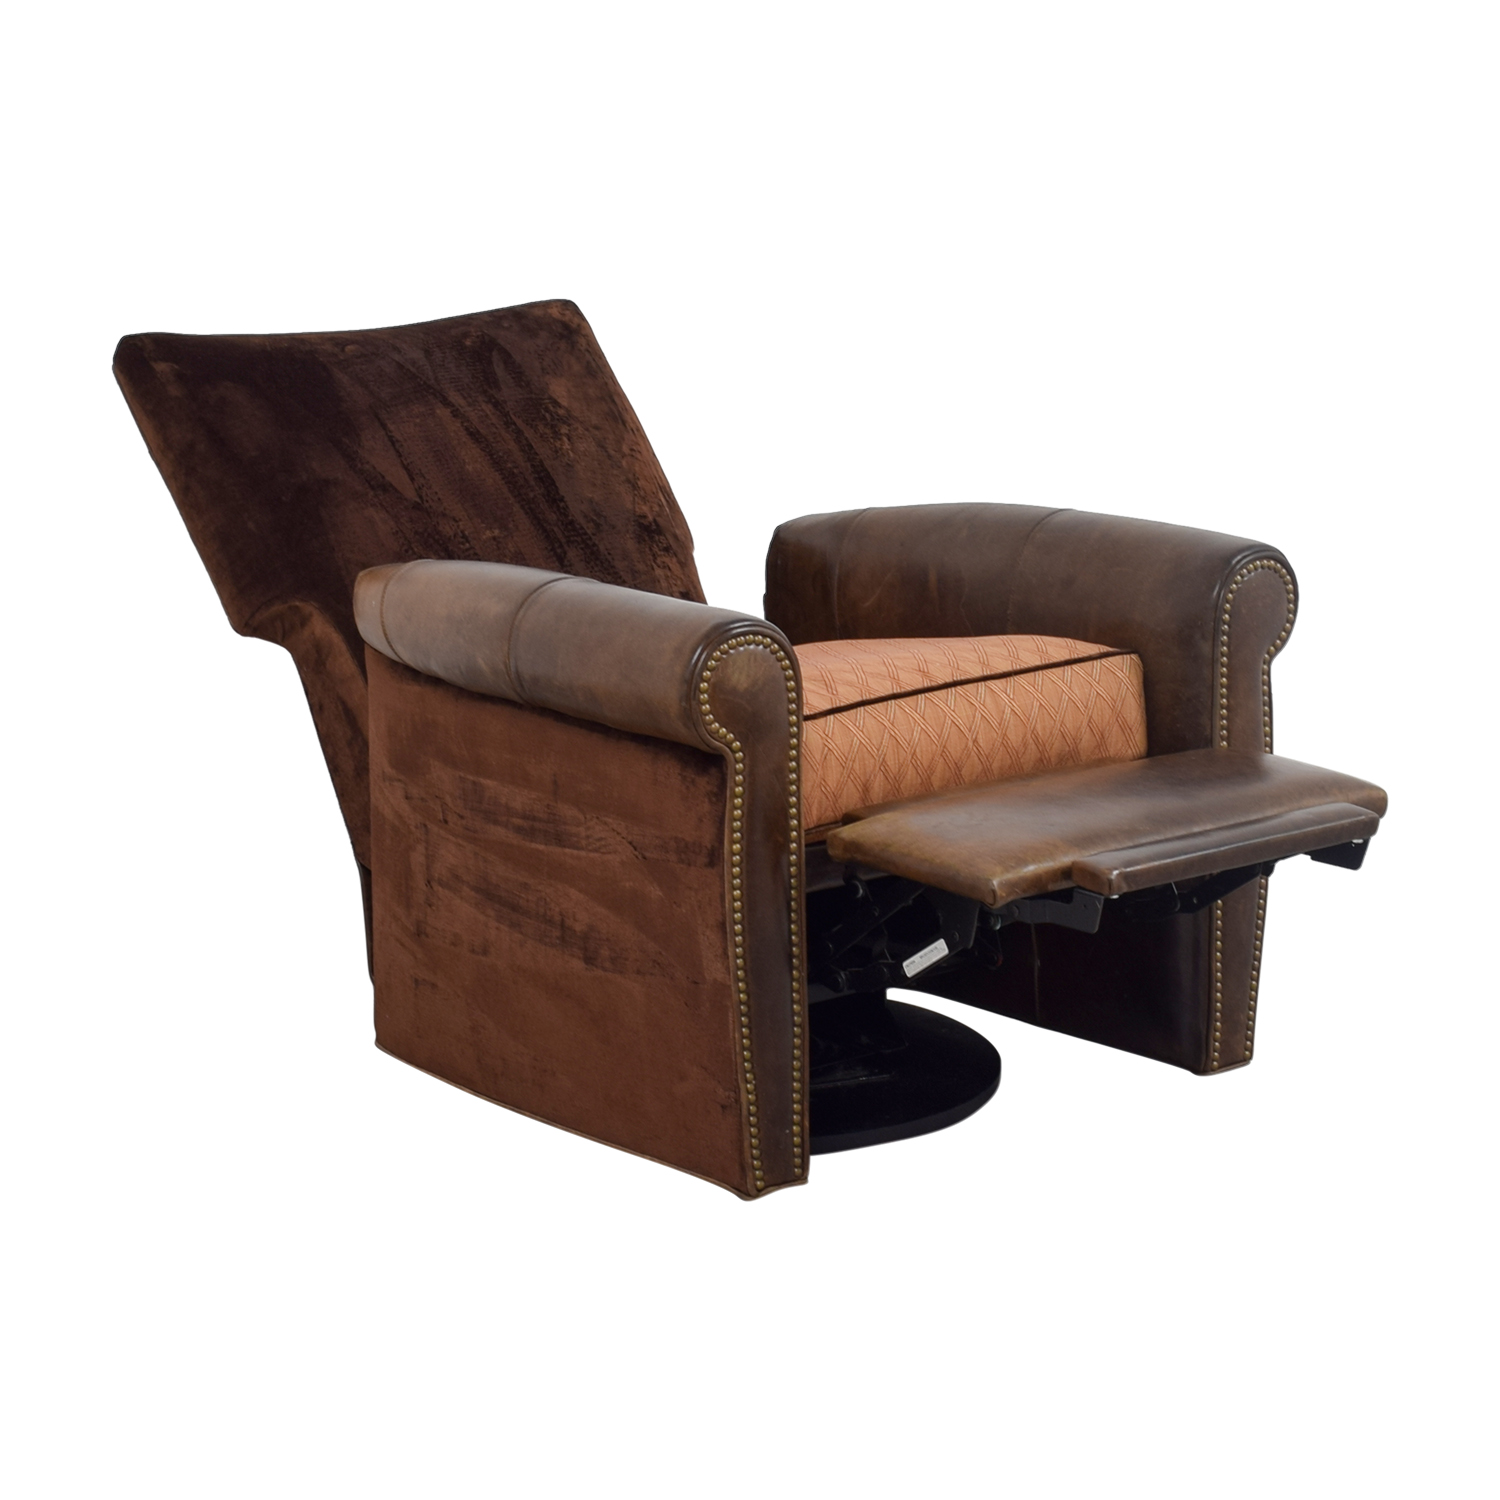 buy Arhaus Arhaus Brown Leather and Velvet Nailhead Swivel Recliner online